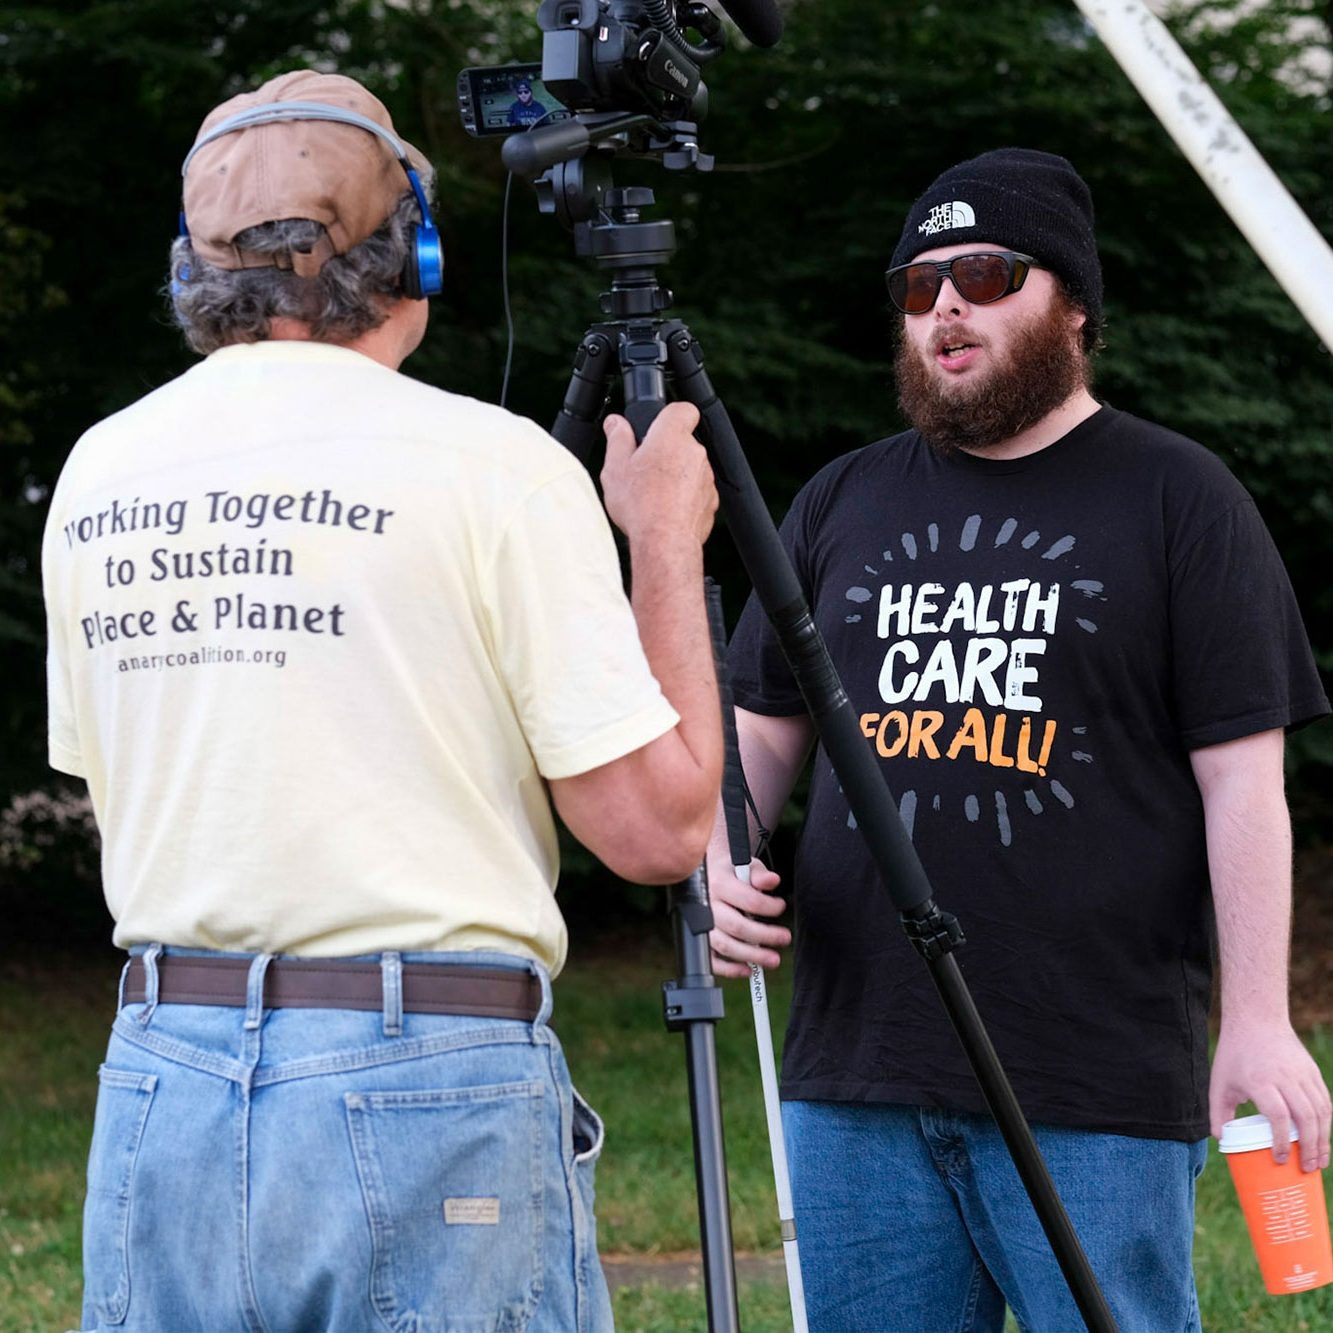 Man interviewing on camera about health care